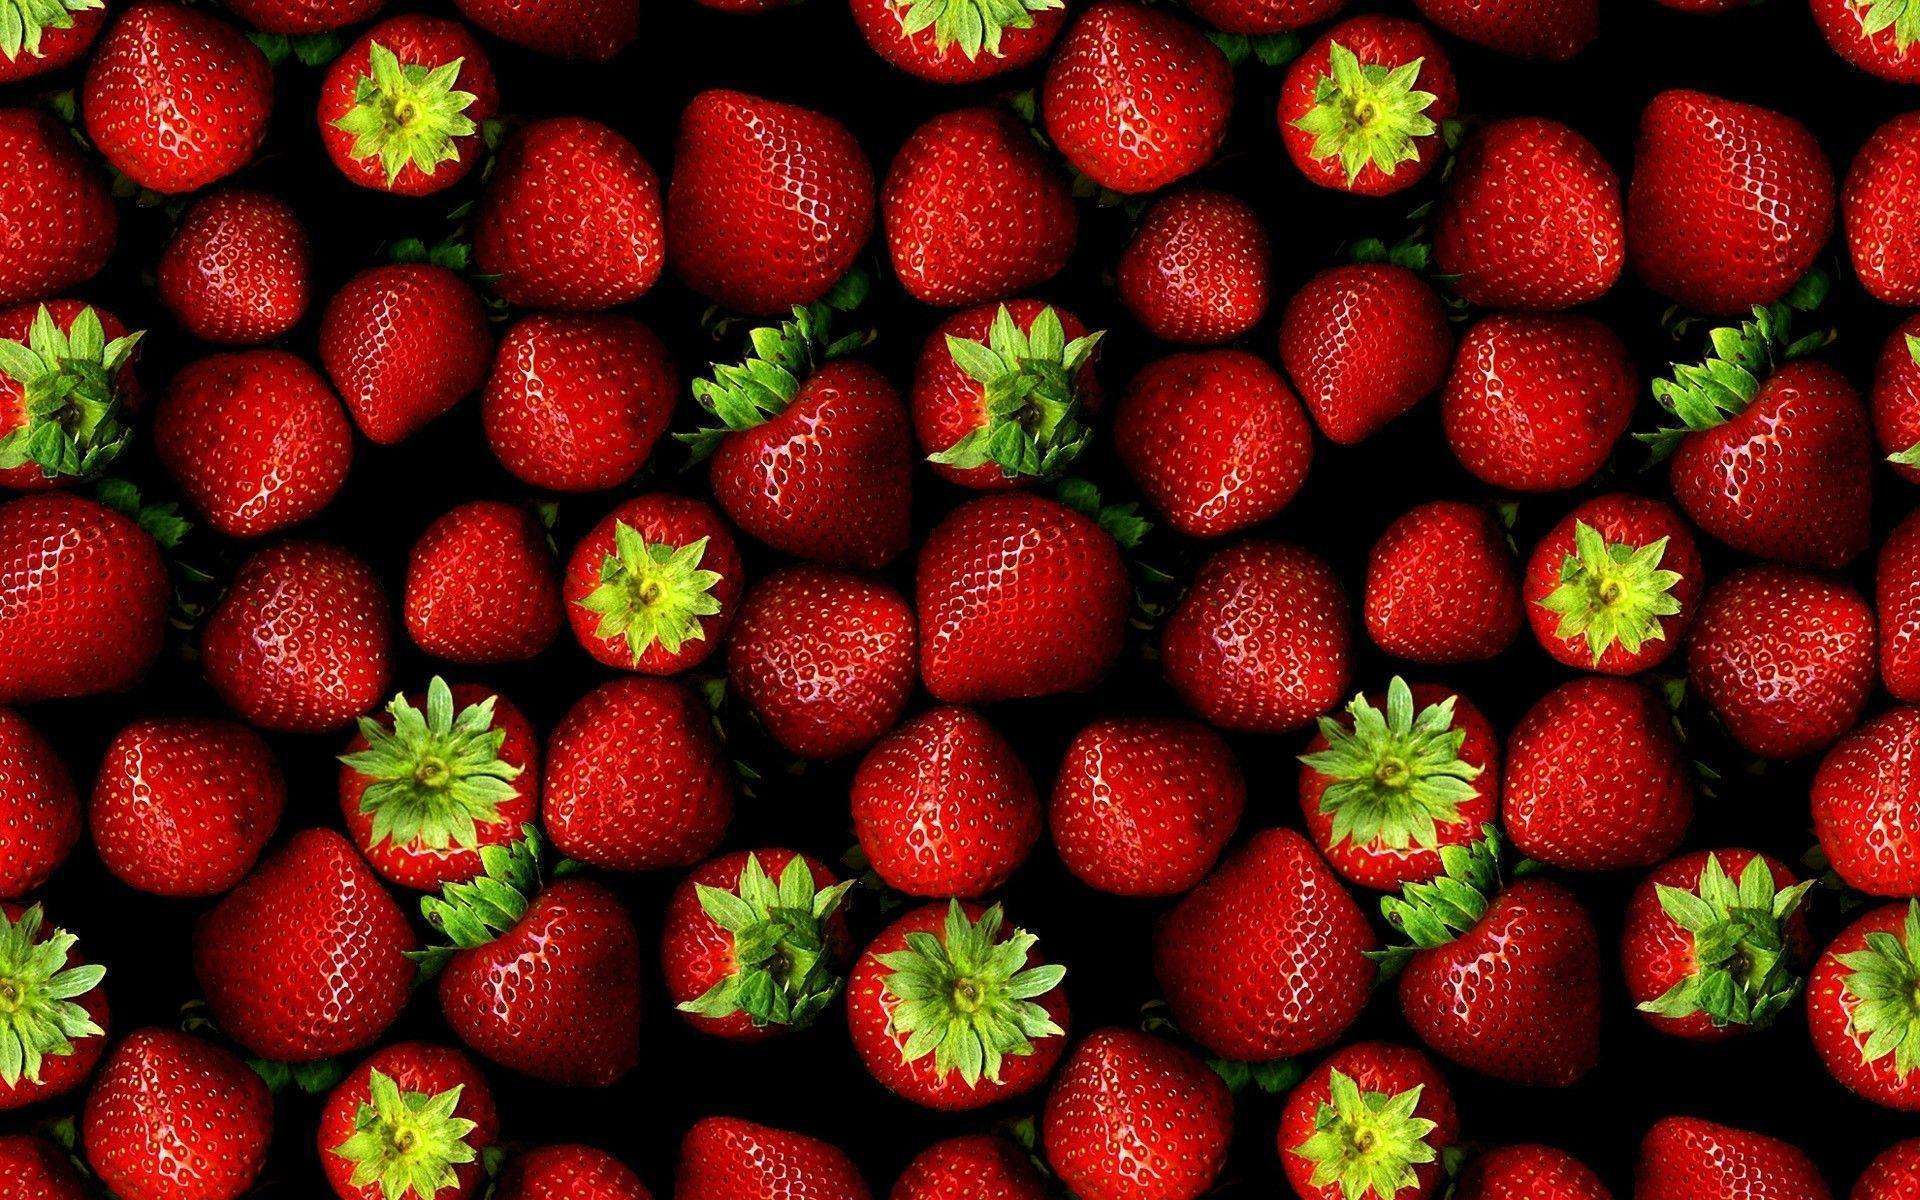 Wallpaper of fruits - Fruit Hd Wallpapers Fruits Desktop Images Cool Wallpapers